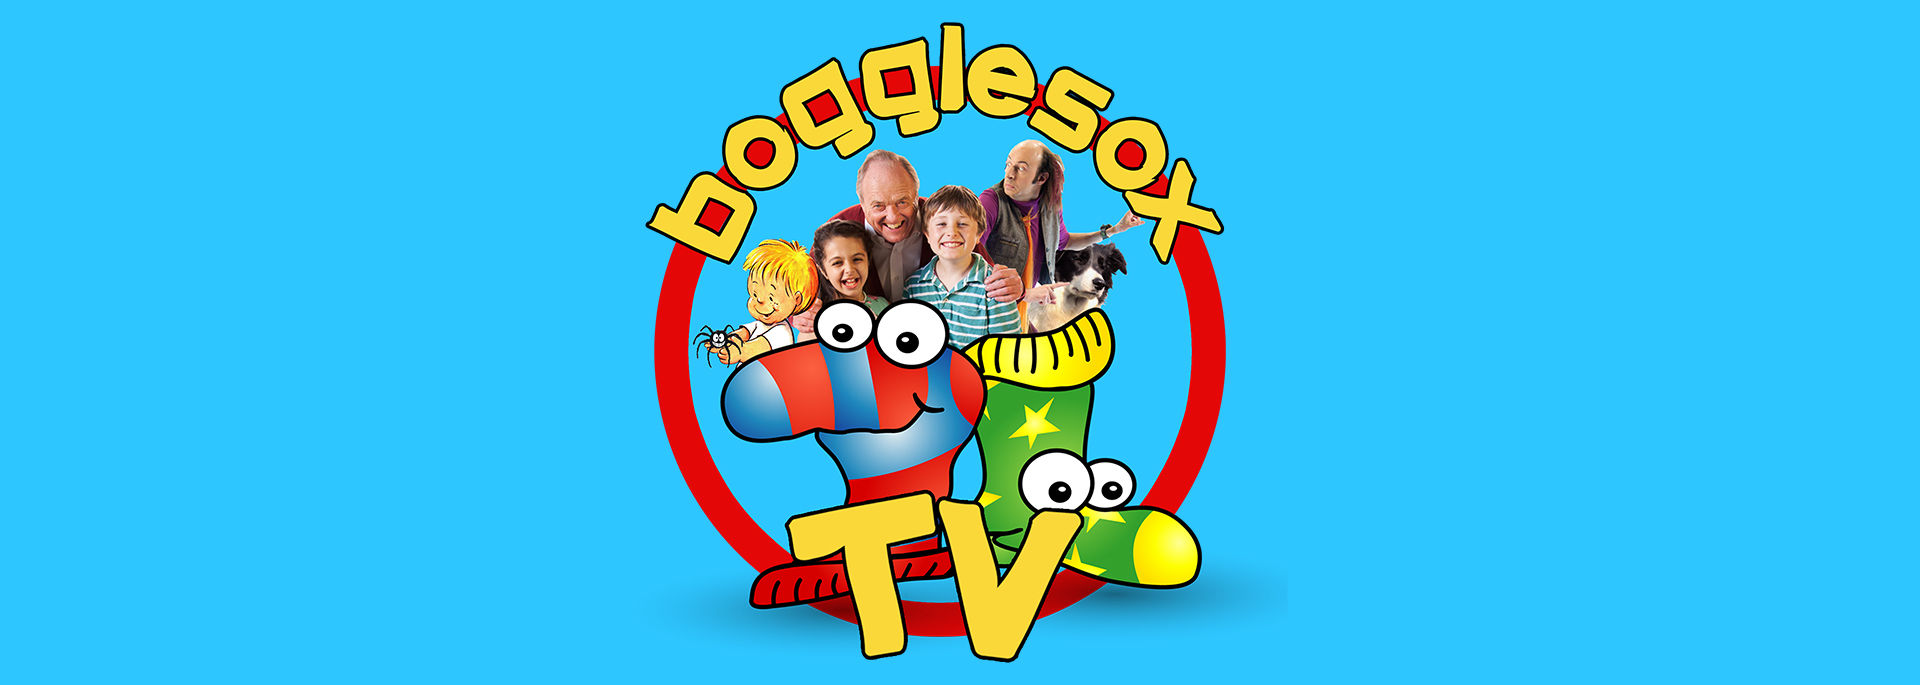 #Bogglesox TV channel